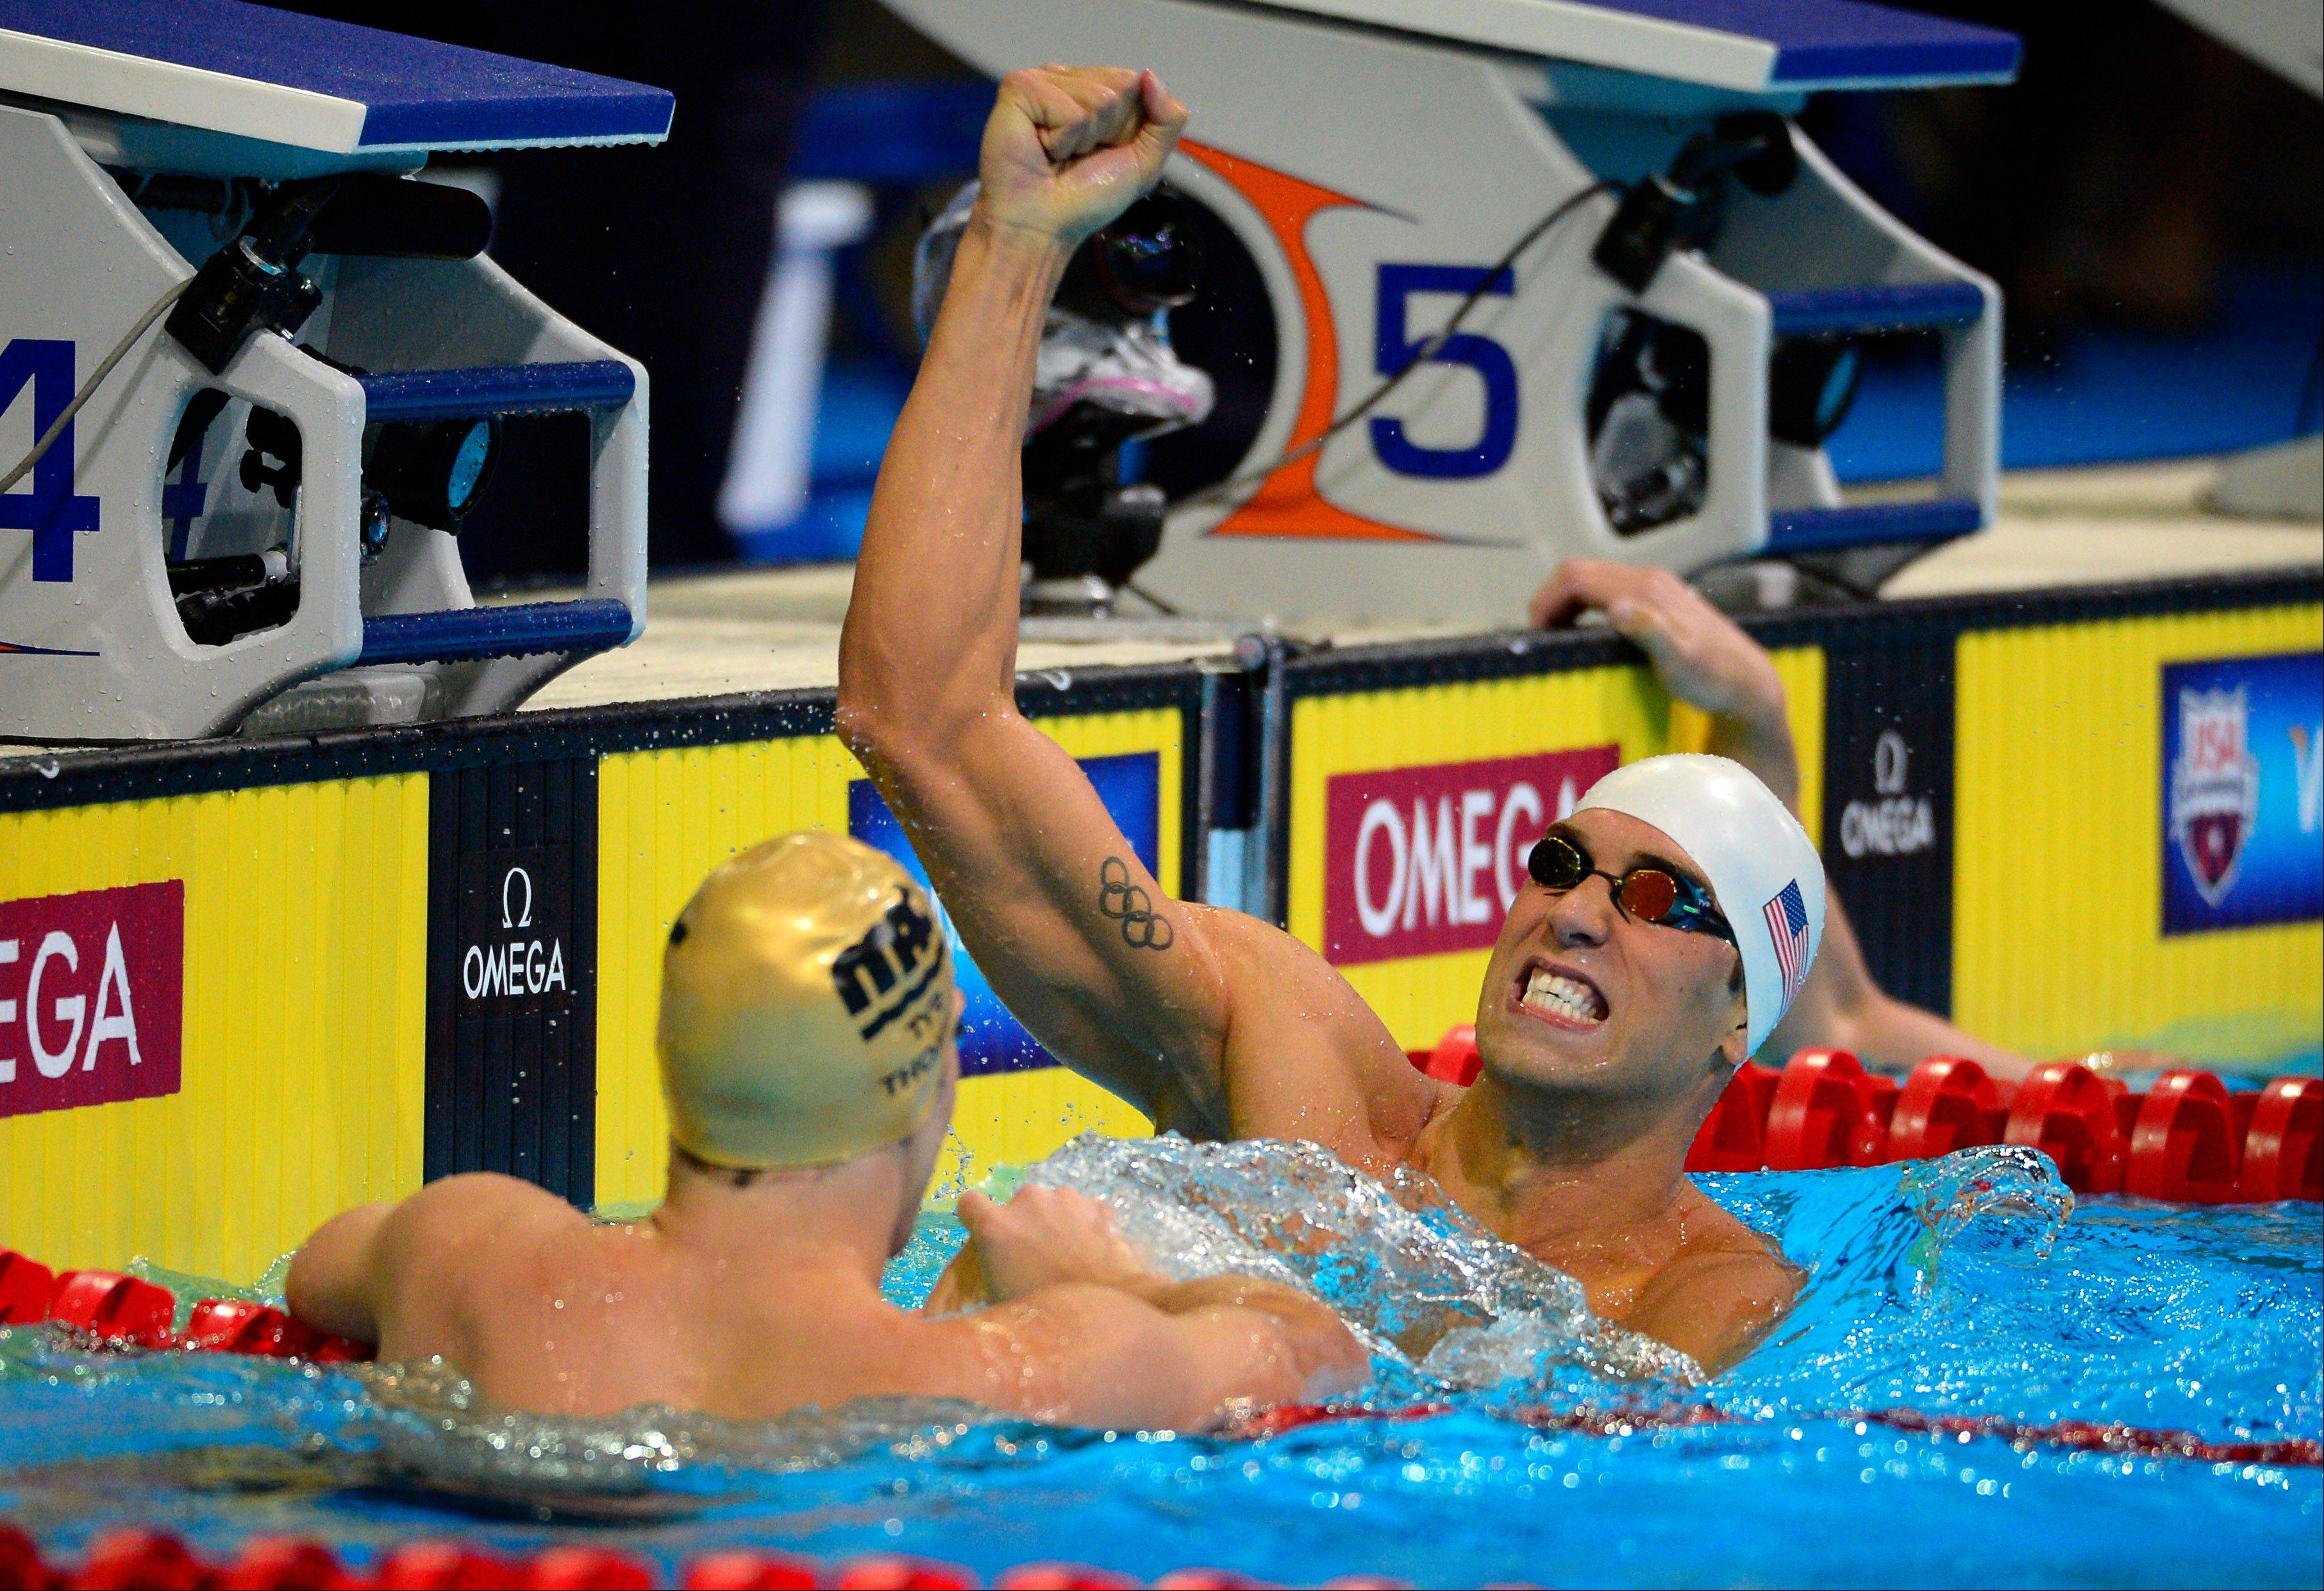 Matt Grevers, right, celebrates winning the men's 100-meter backstroke final at the U.S. Olympic swimming trials on Wednesday in Omaha, Neb.